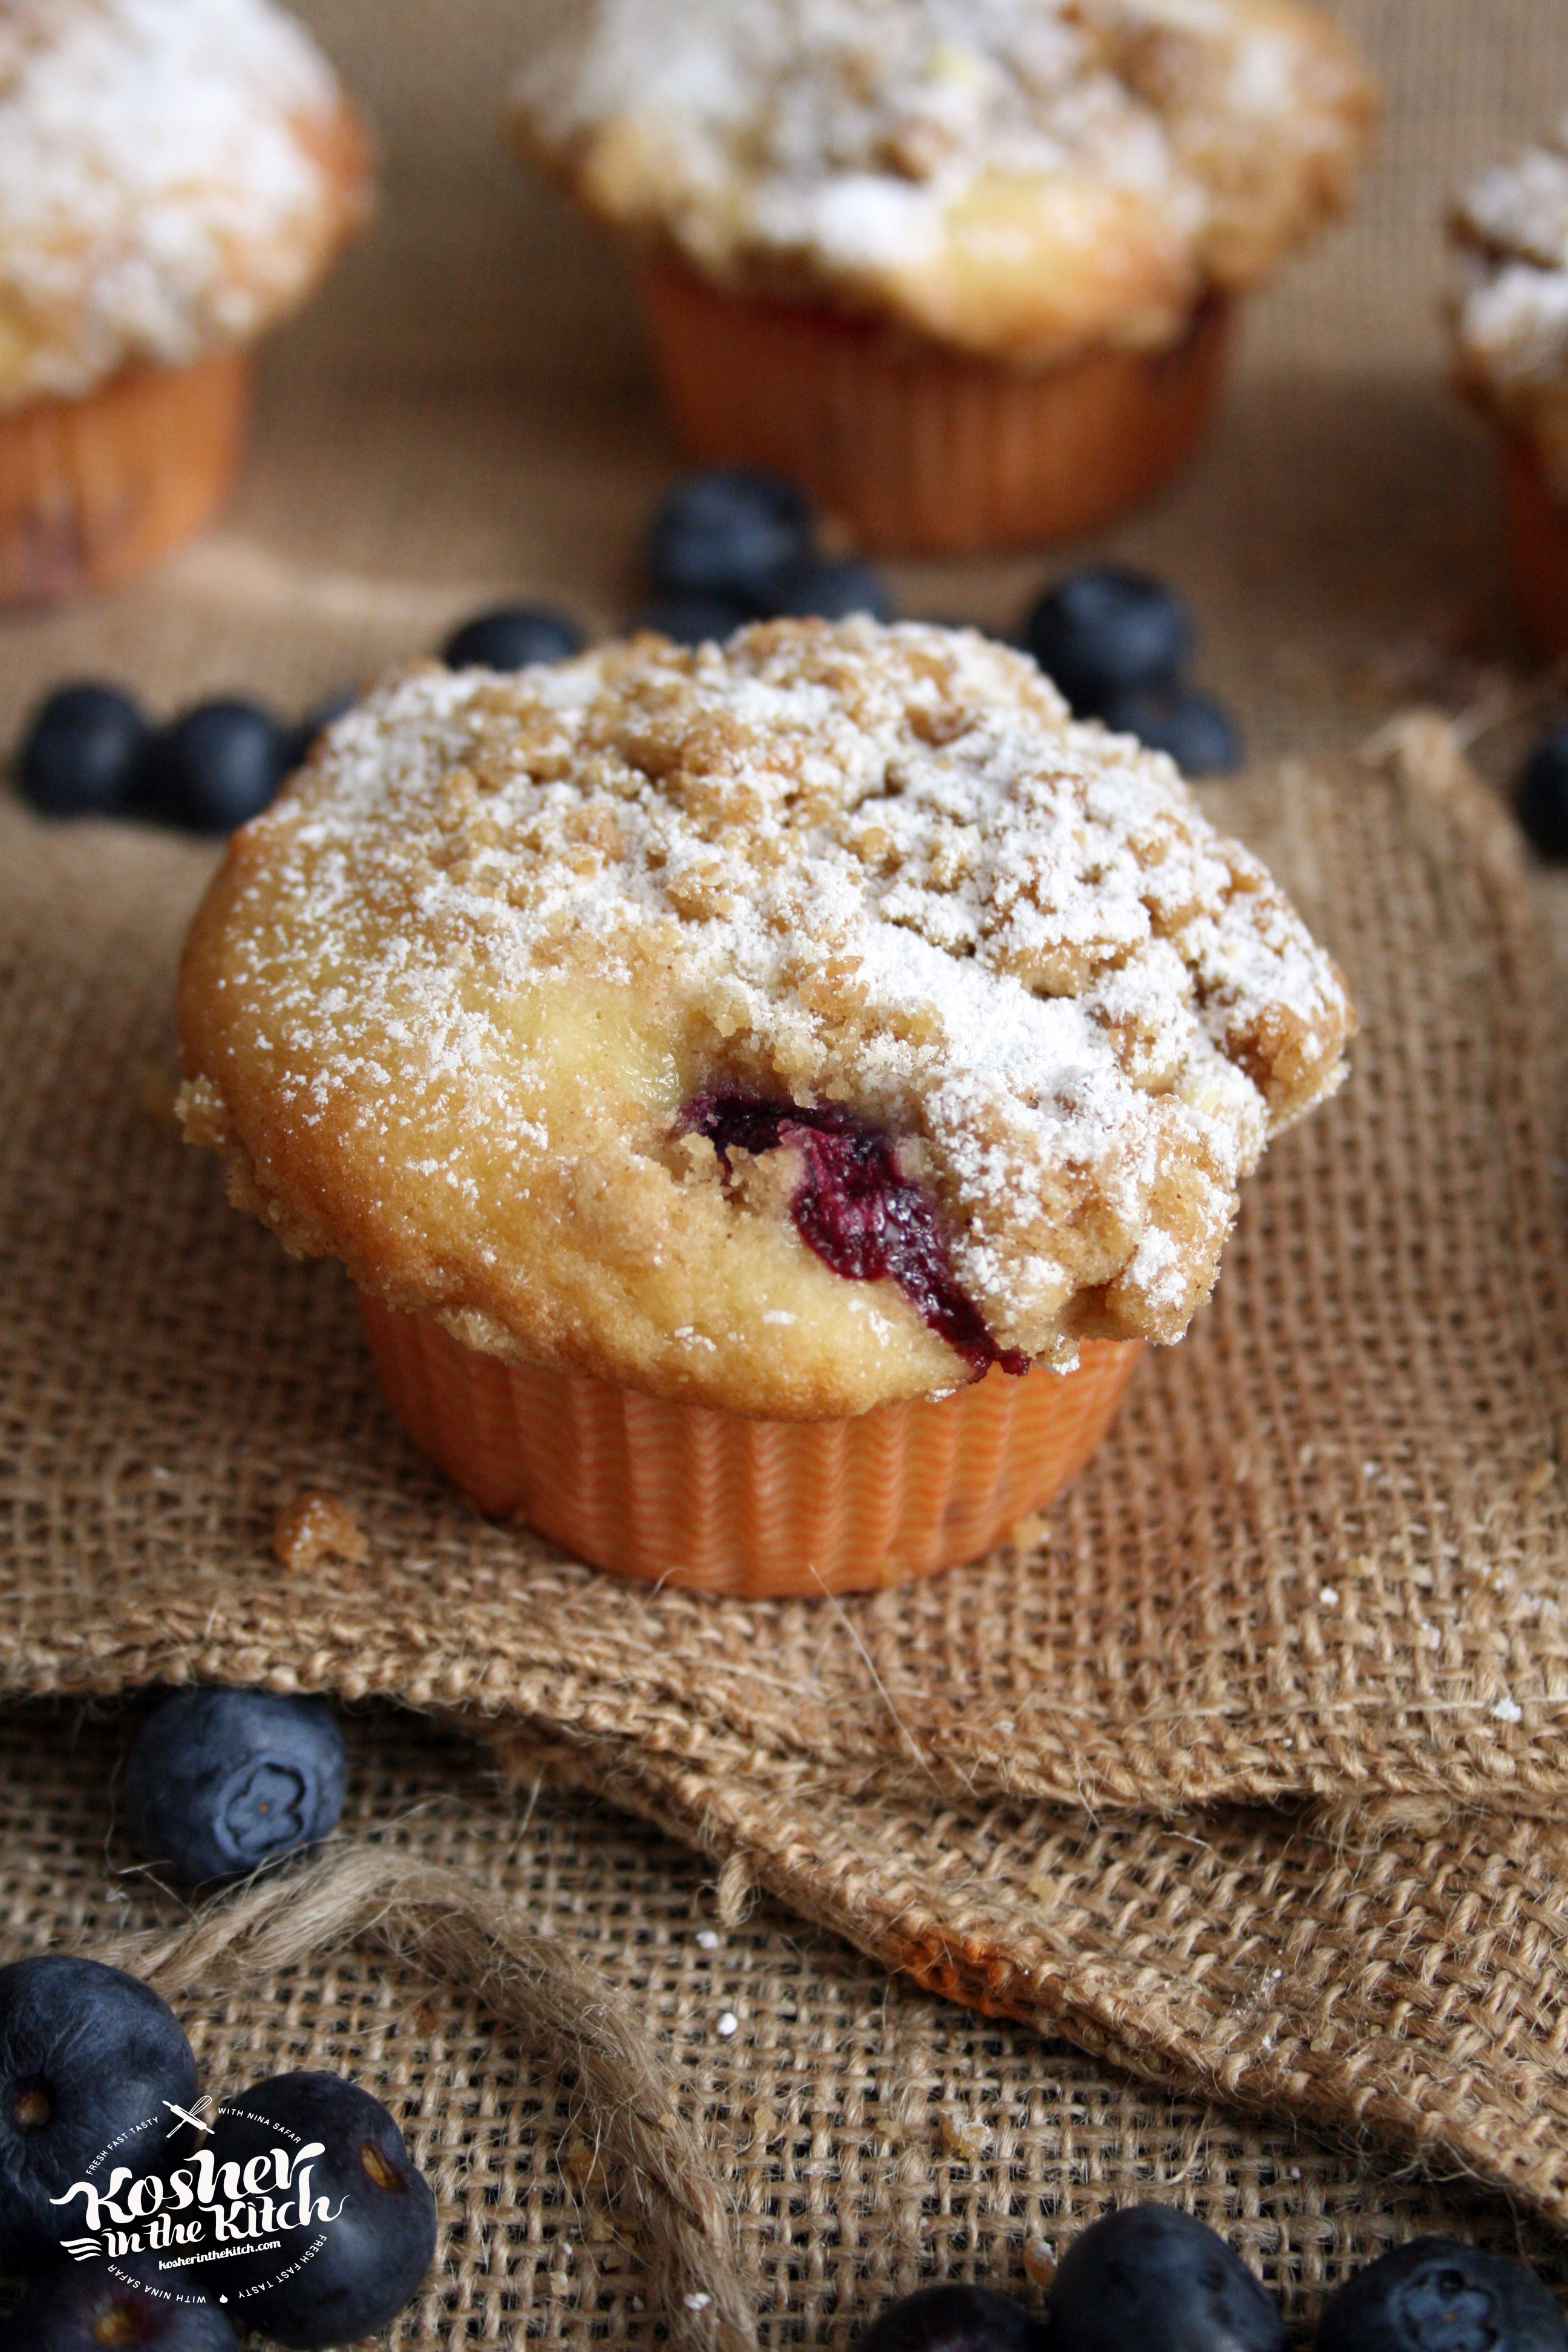 Blueberry Crumb Muffins - Kosher In The Kitch!